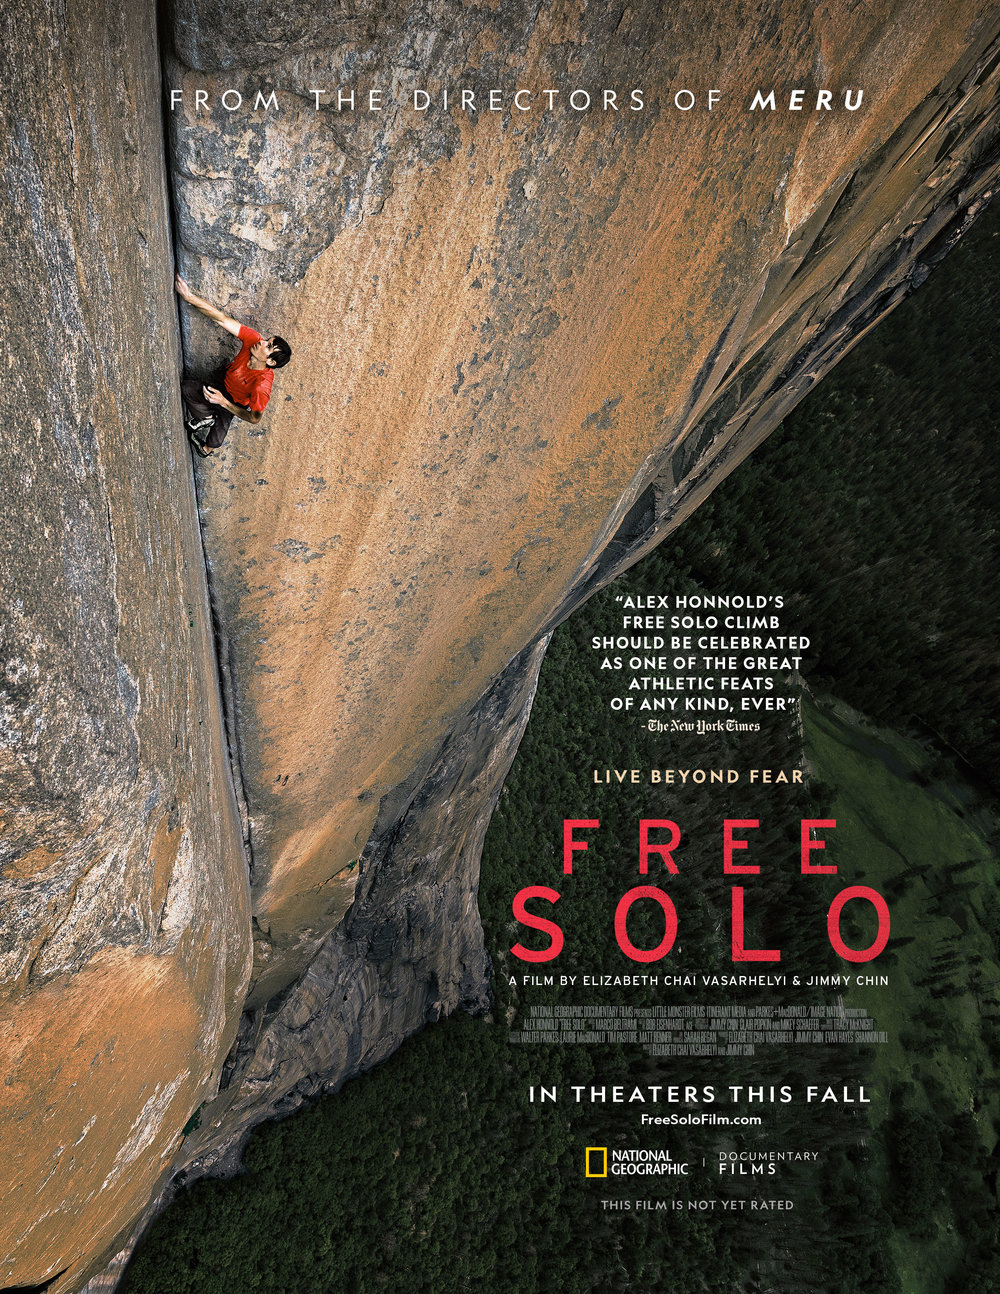 Free Solo   (2018) dir. Elizabeth Chai Vasarhelyi & Jimmy Chin Rated: PG-13 image: ©2018  National Geographic Documentary Films